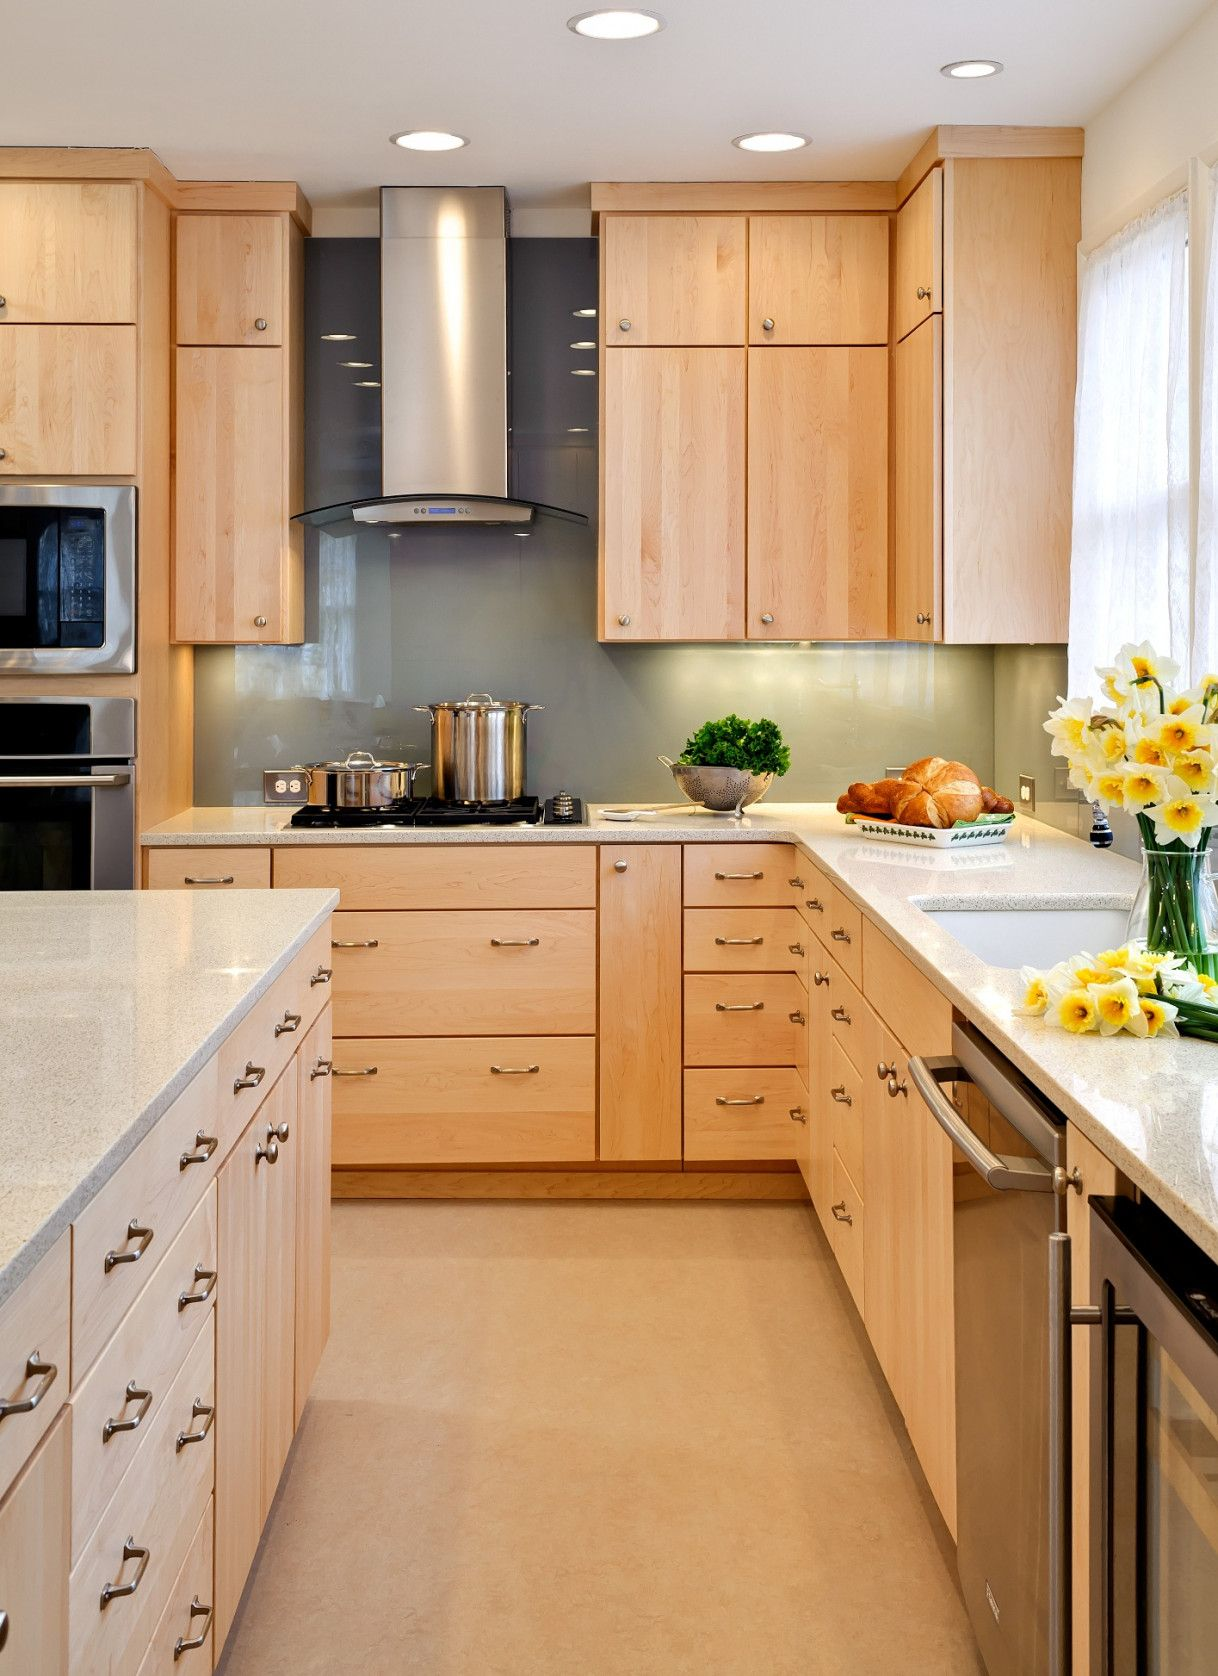 2019 natural color kitchen cabinets kitchen cabinets storage ideas check more at kitchen on kitchen cabinets natural wood id=13079